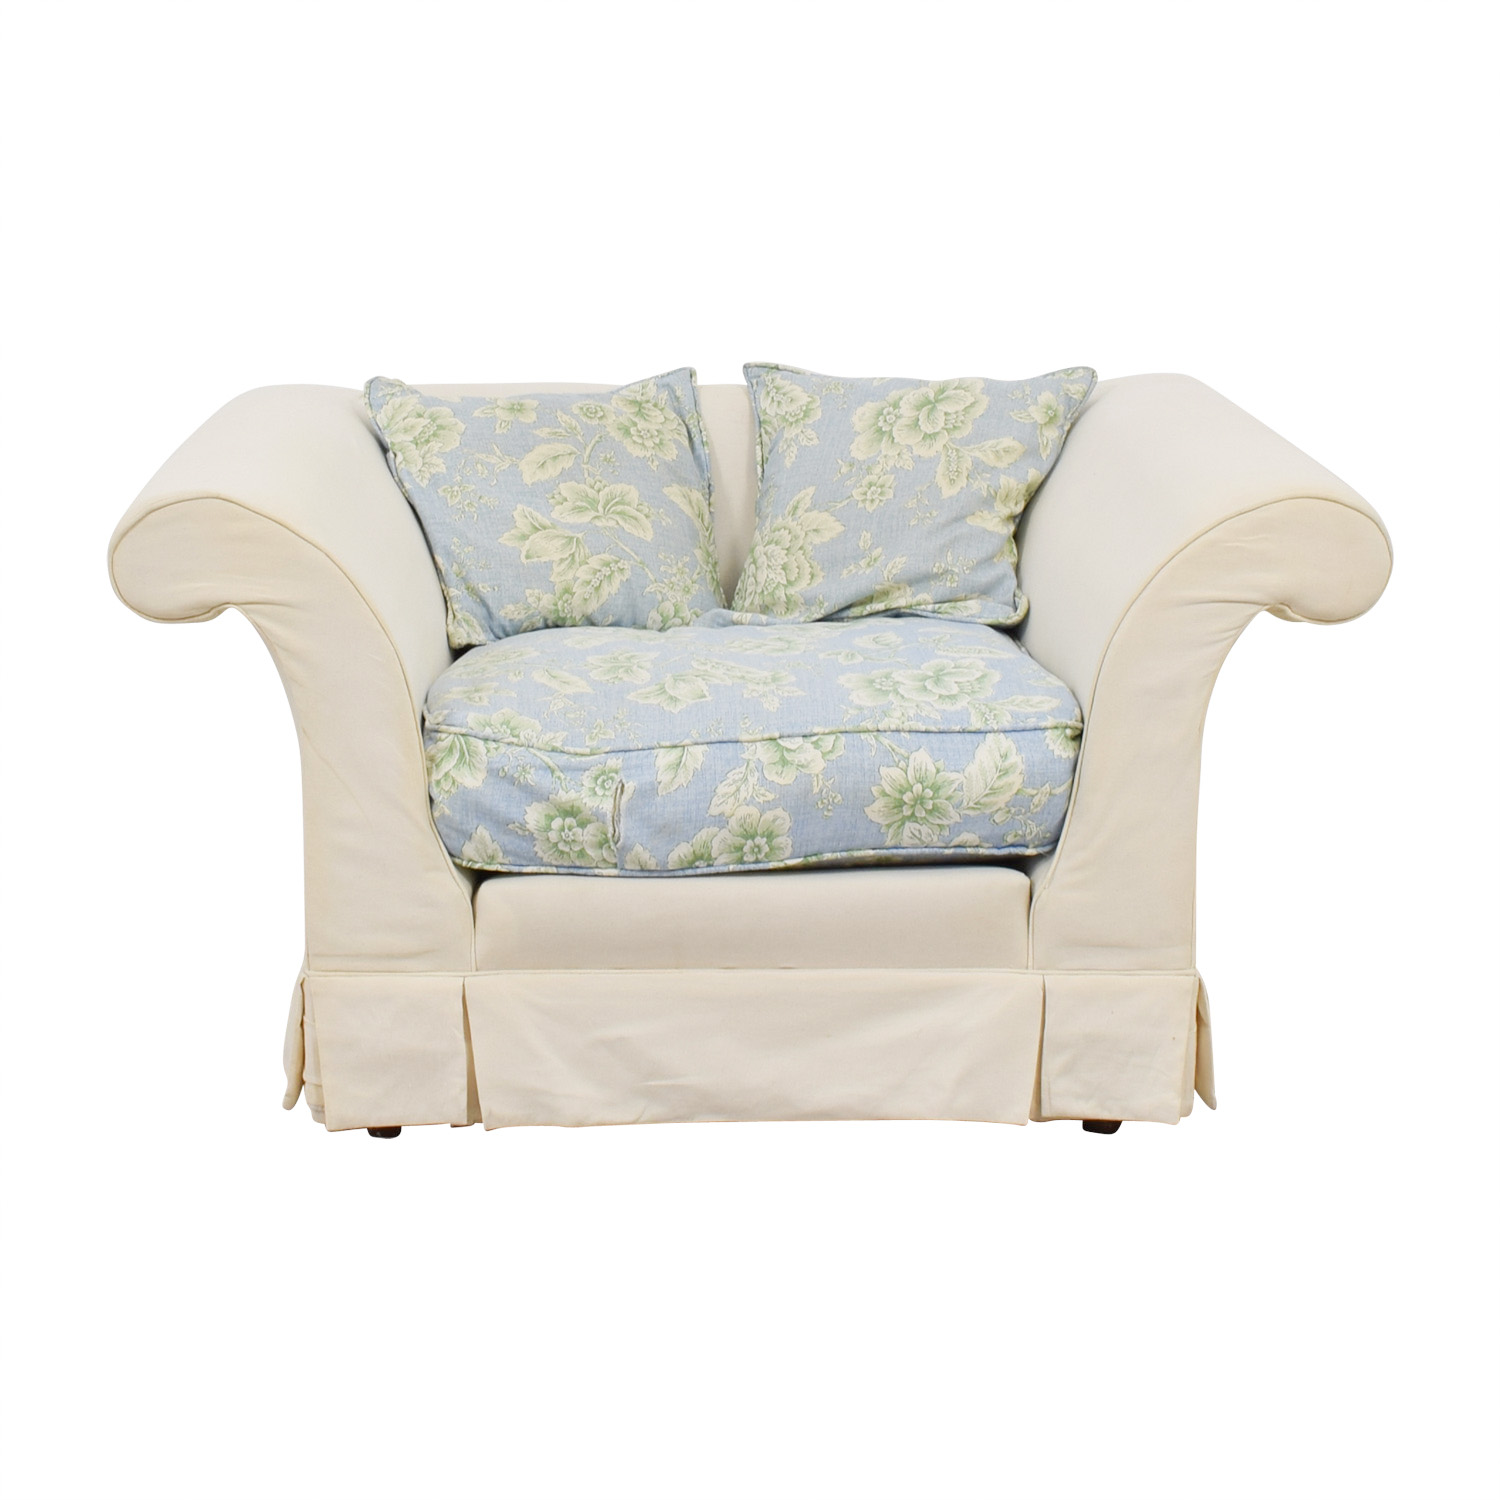 Rachel Ashwell Shabby Chic Wide Chair Coupon